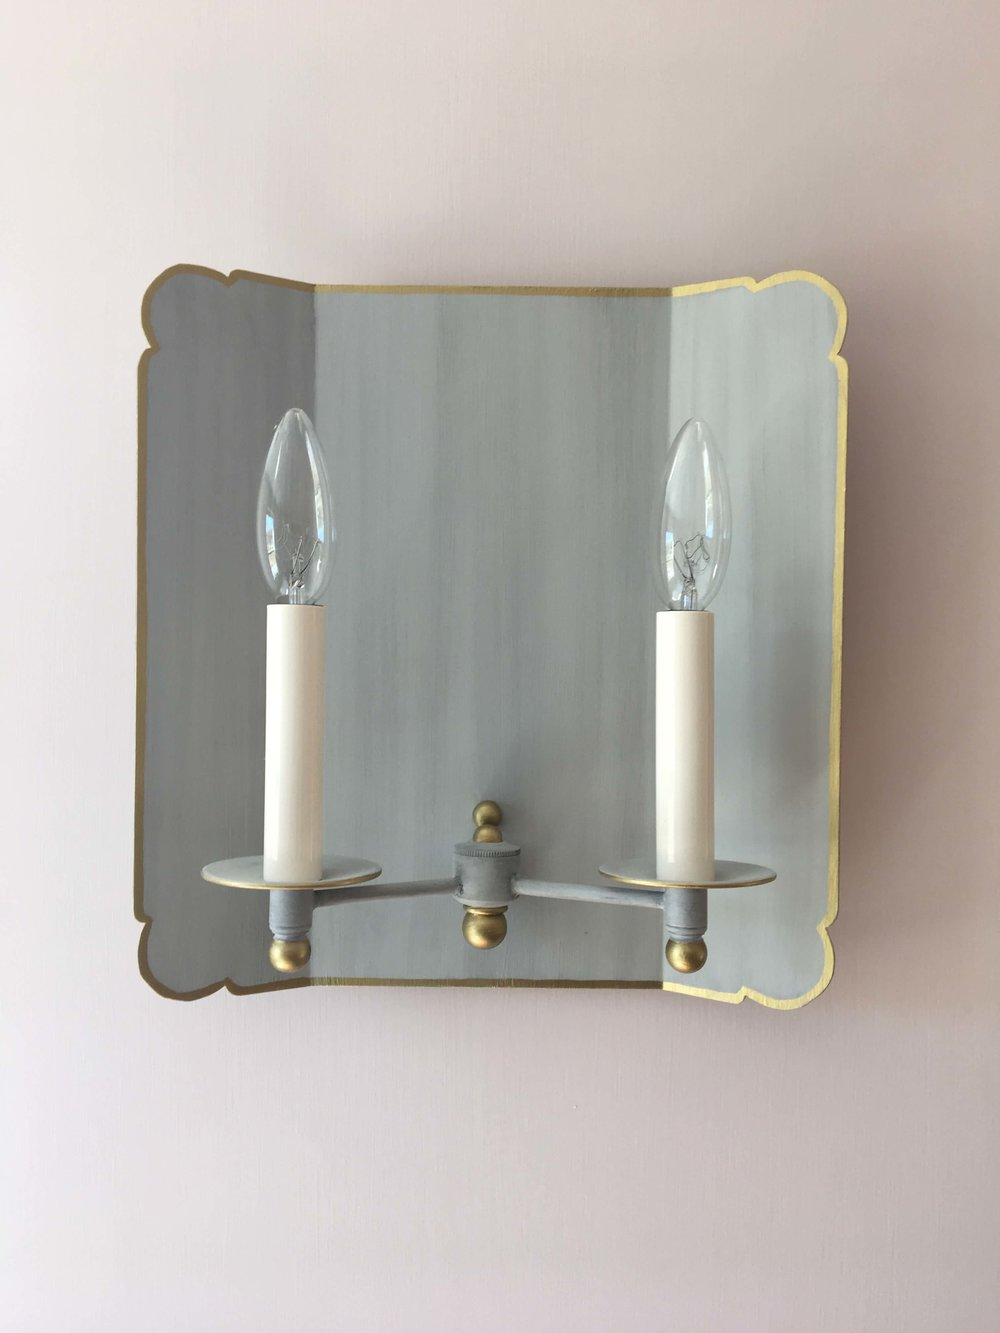 19 OYSTER BAY HOUSE INT PHOTO HER BATH SCONCE WEBSITE 2018.jpg